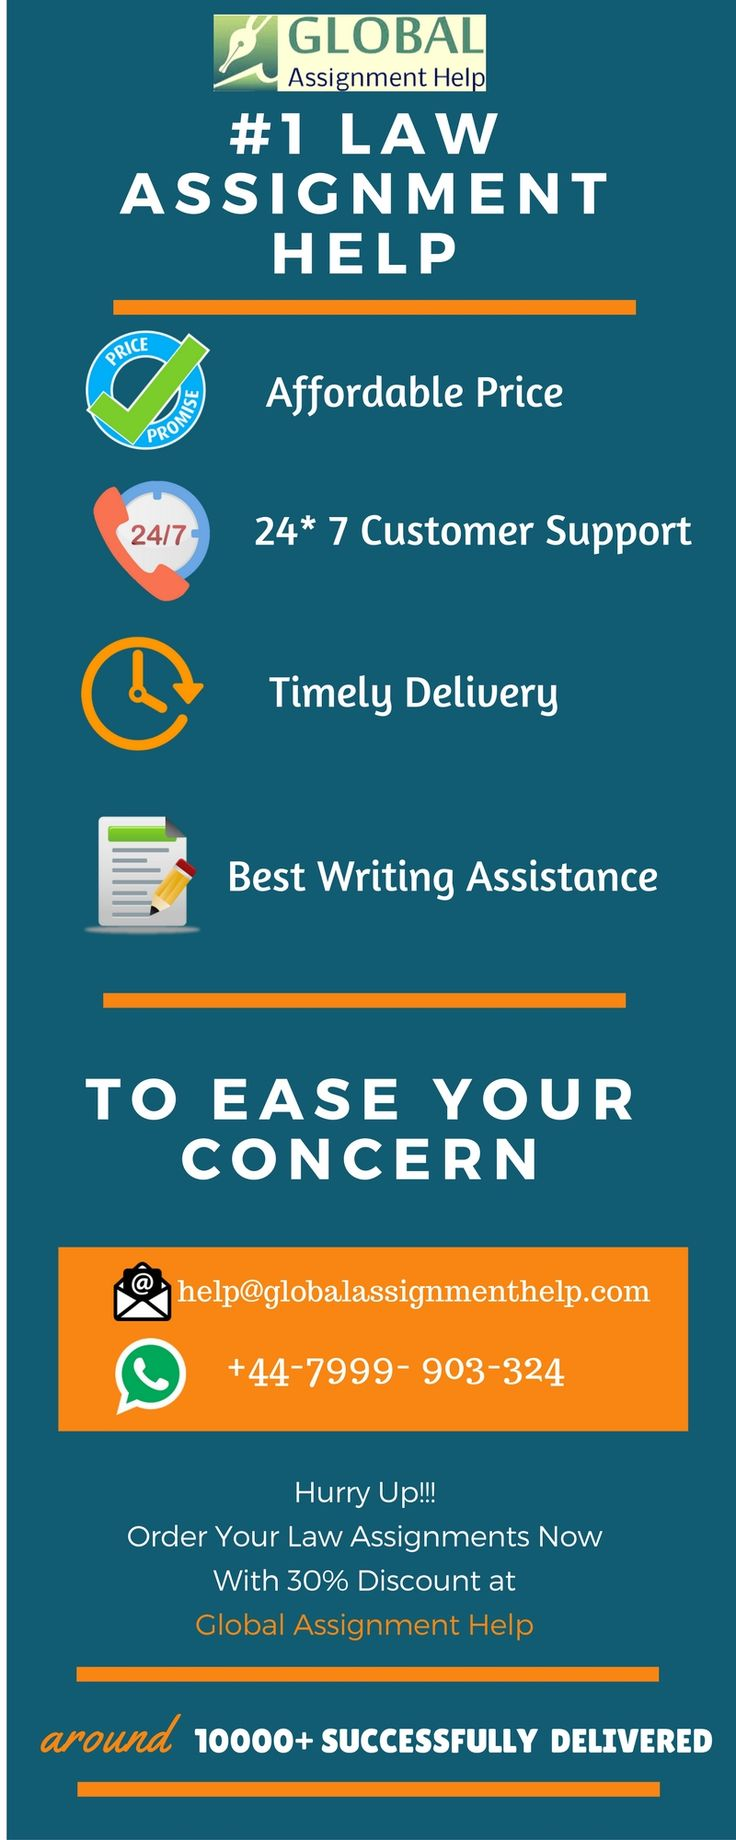 17 images about global assignment help writers are you struggling your law assignment do you need law assignment help global